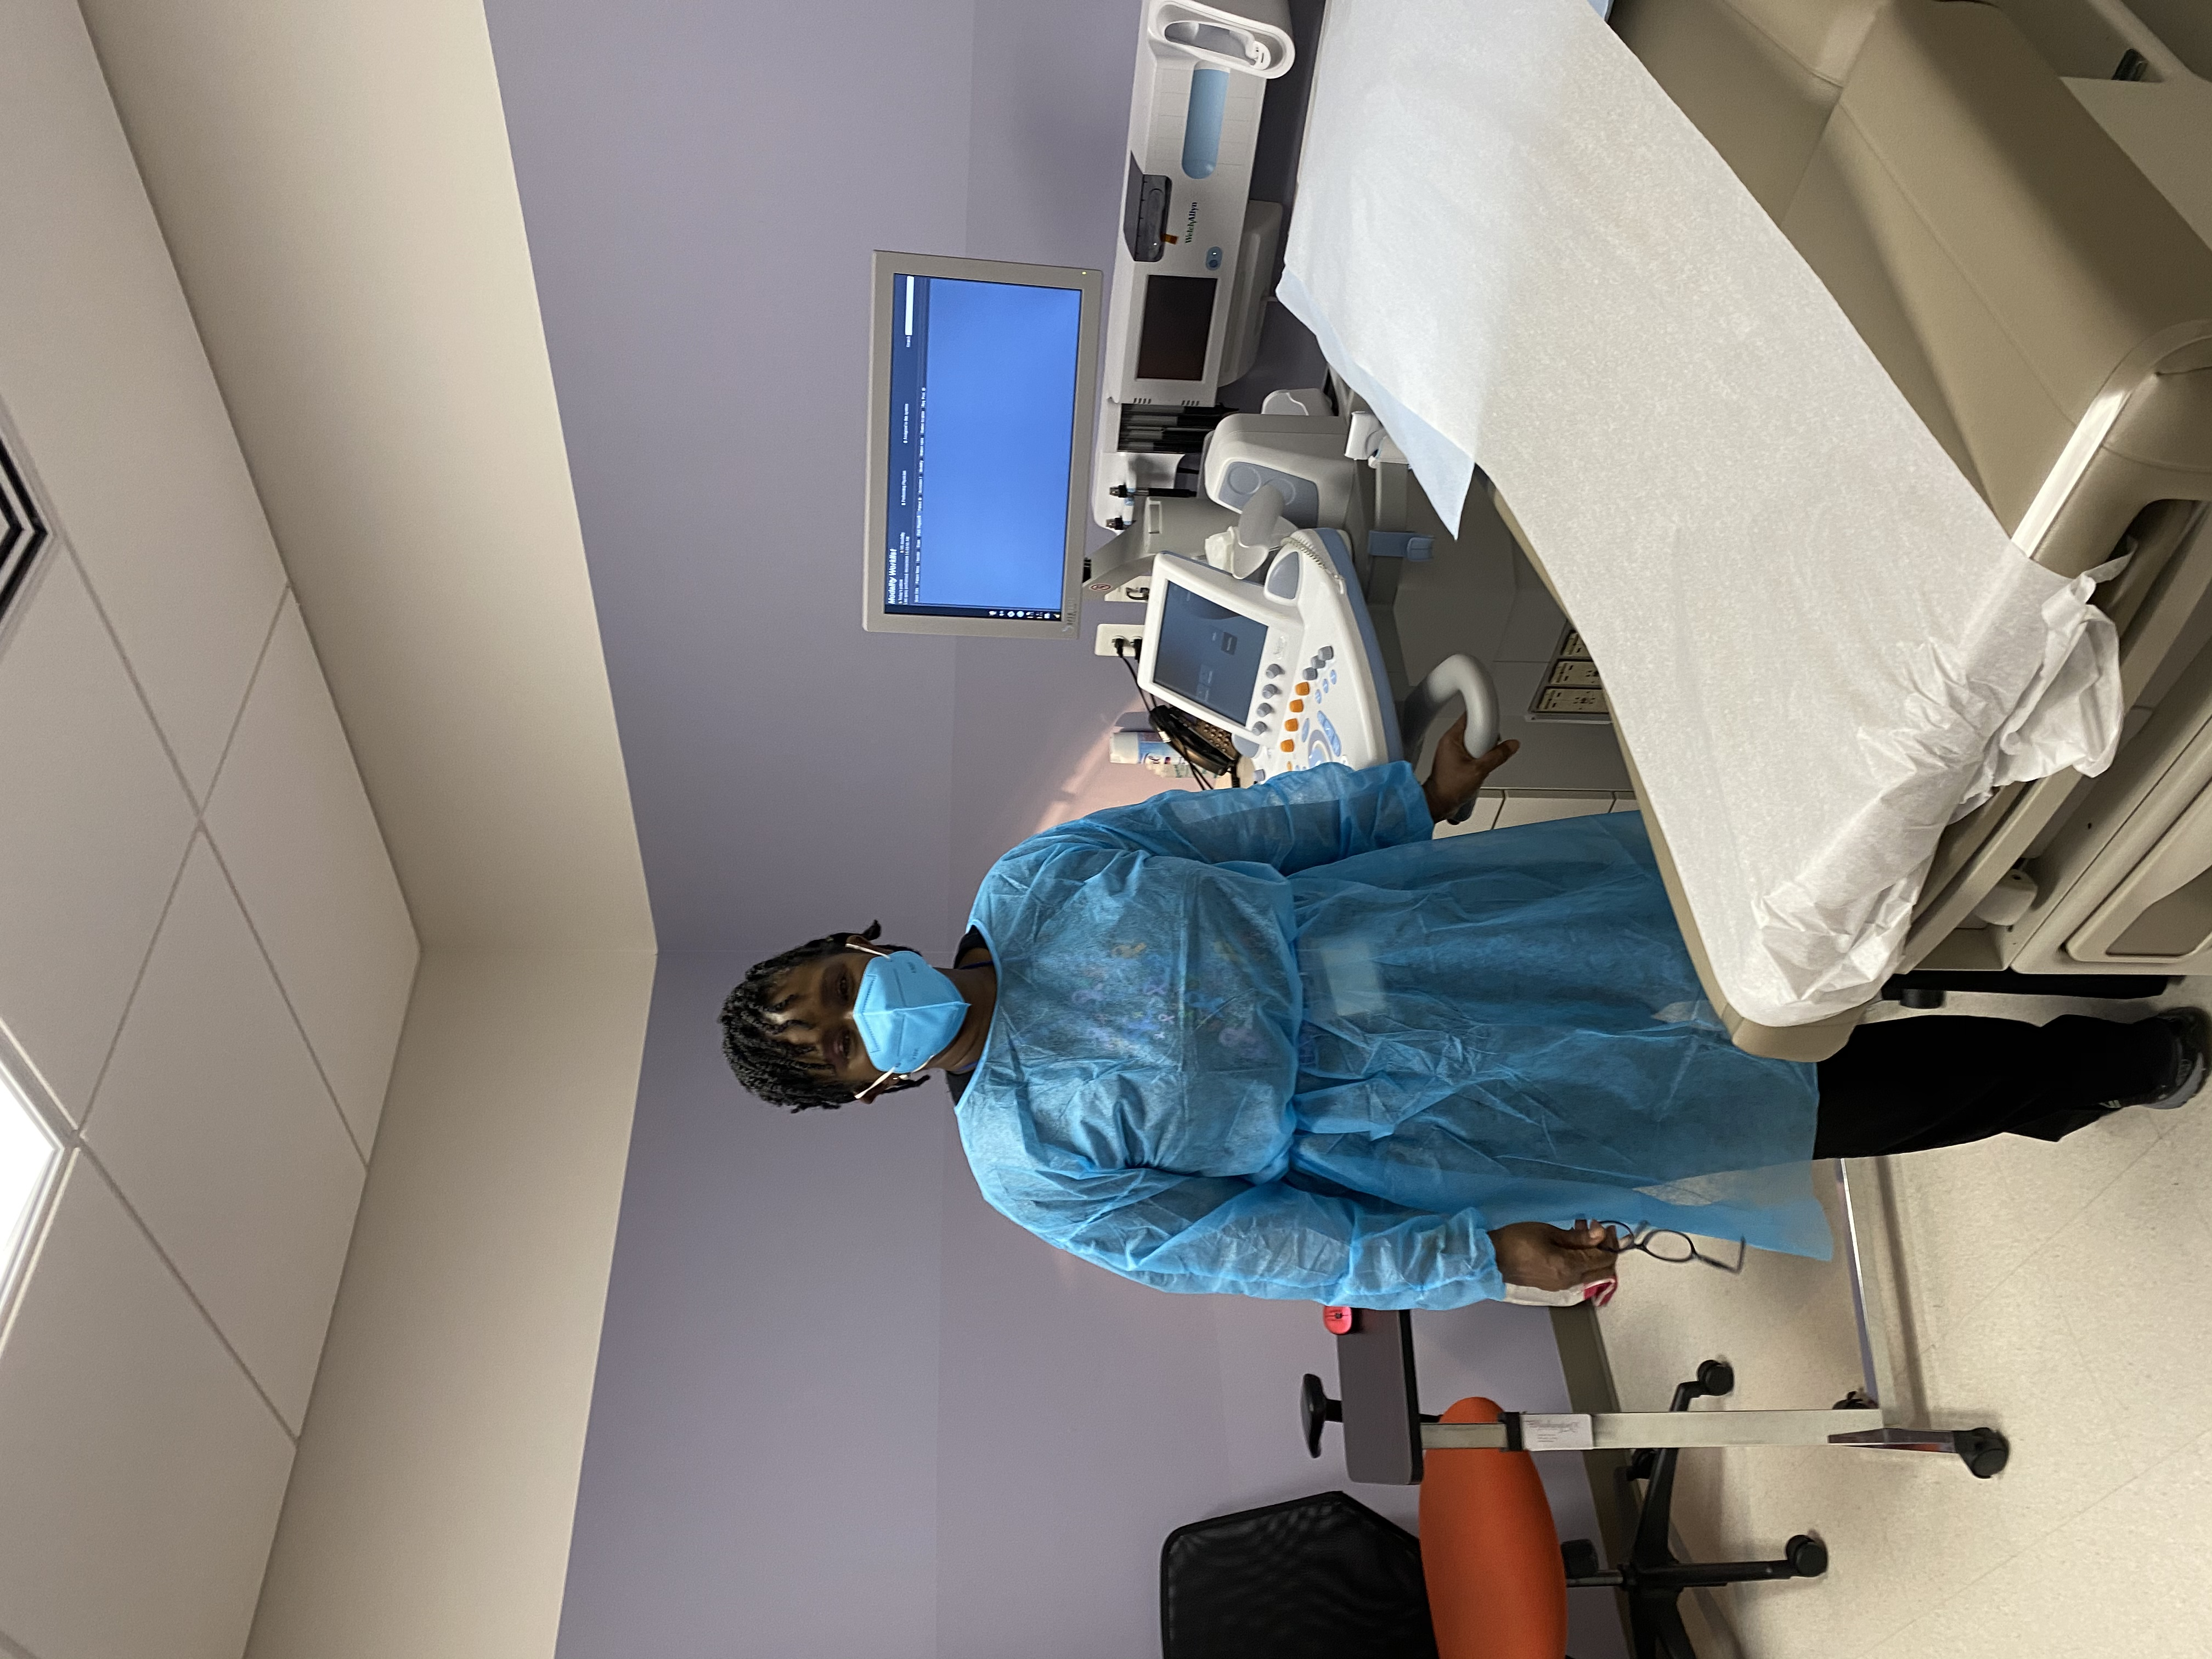 A woman in an exam room wearing a mask and gown